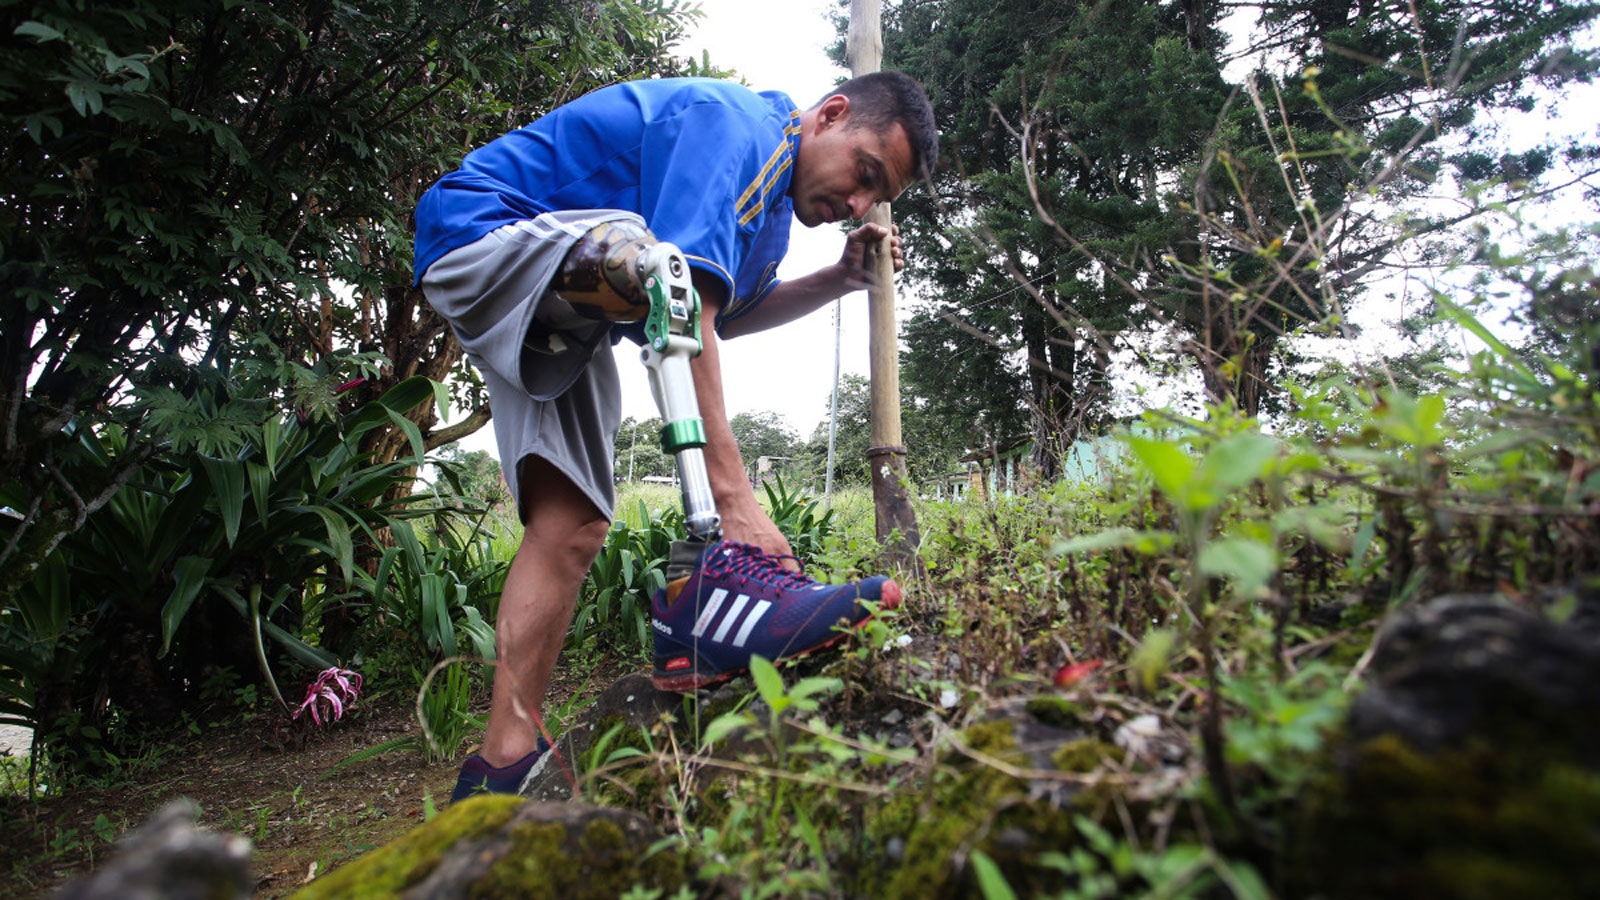 Jose lost his leg after being injured by a landmine in Colombia